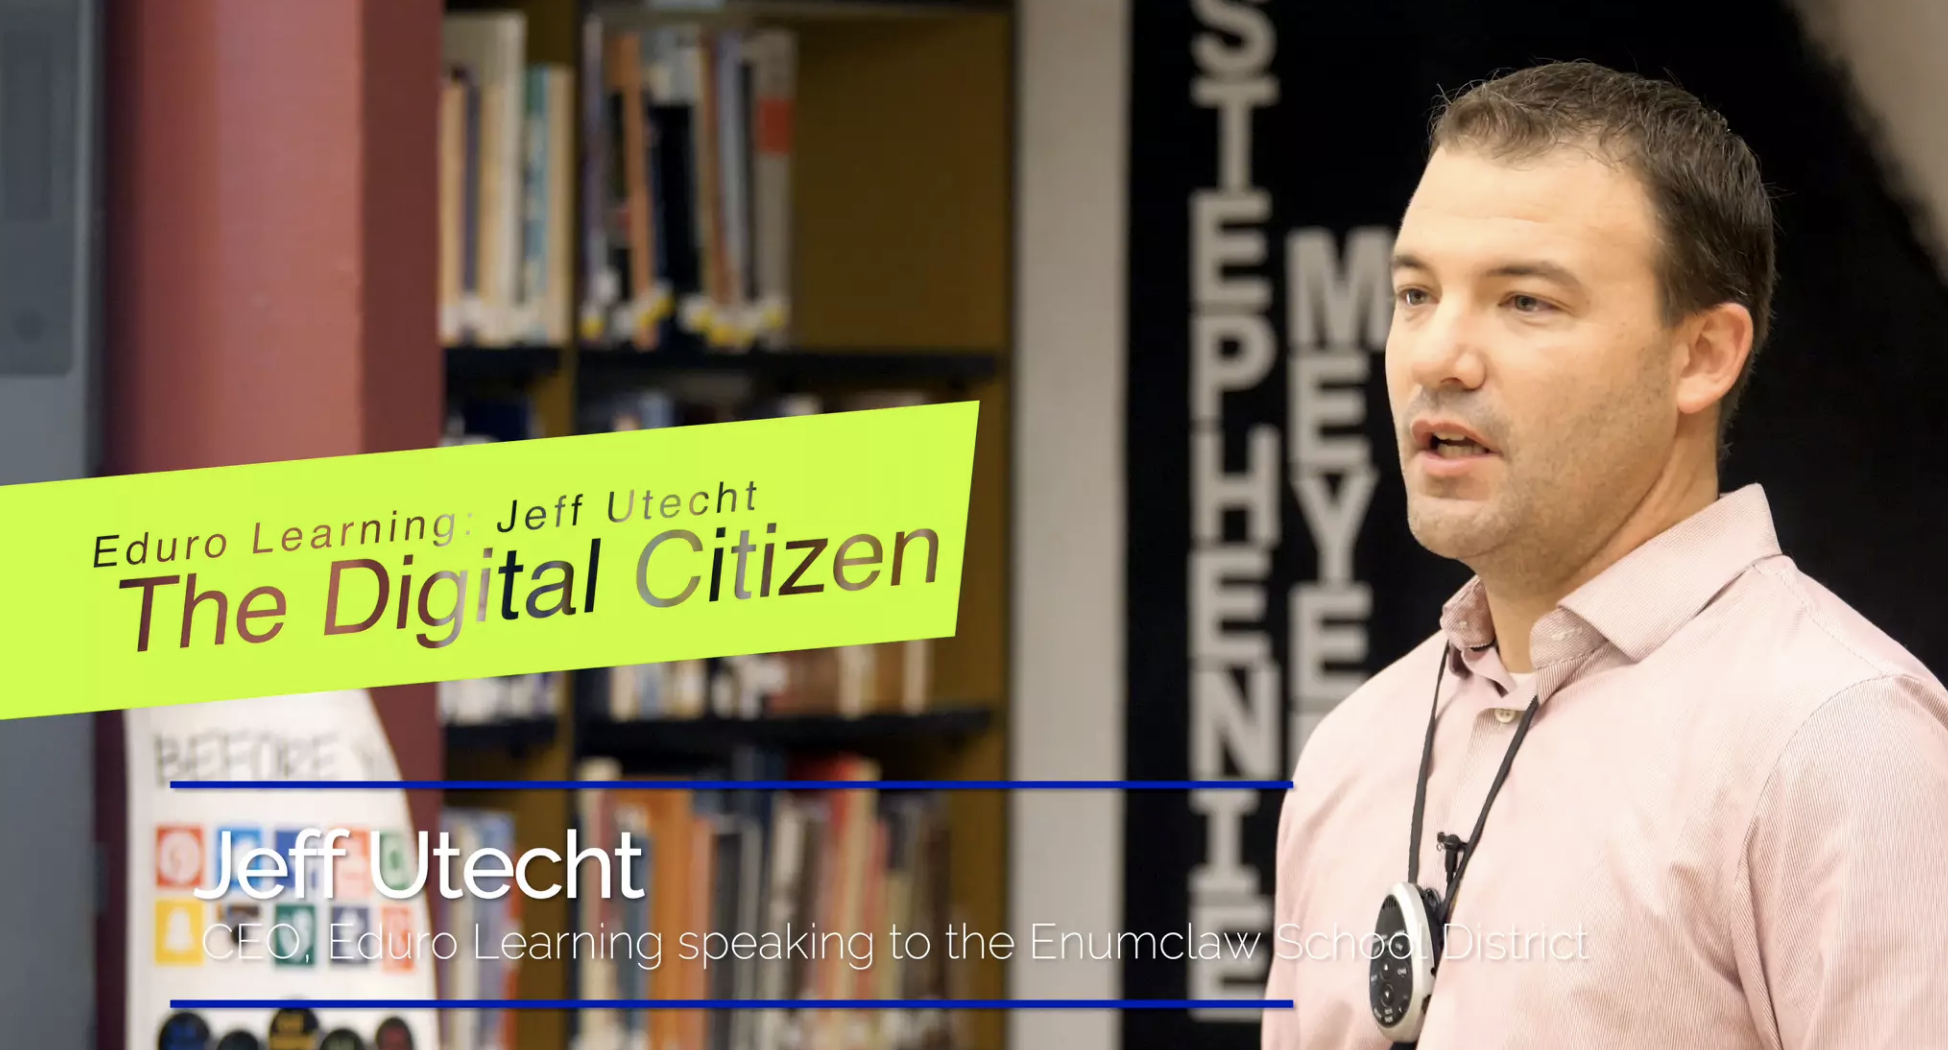 Enumclaw School District – The Digital Citizen